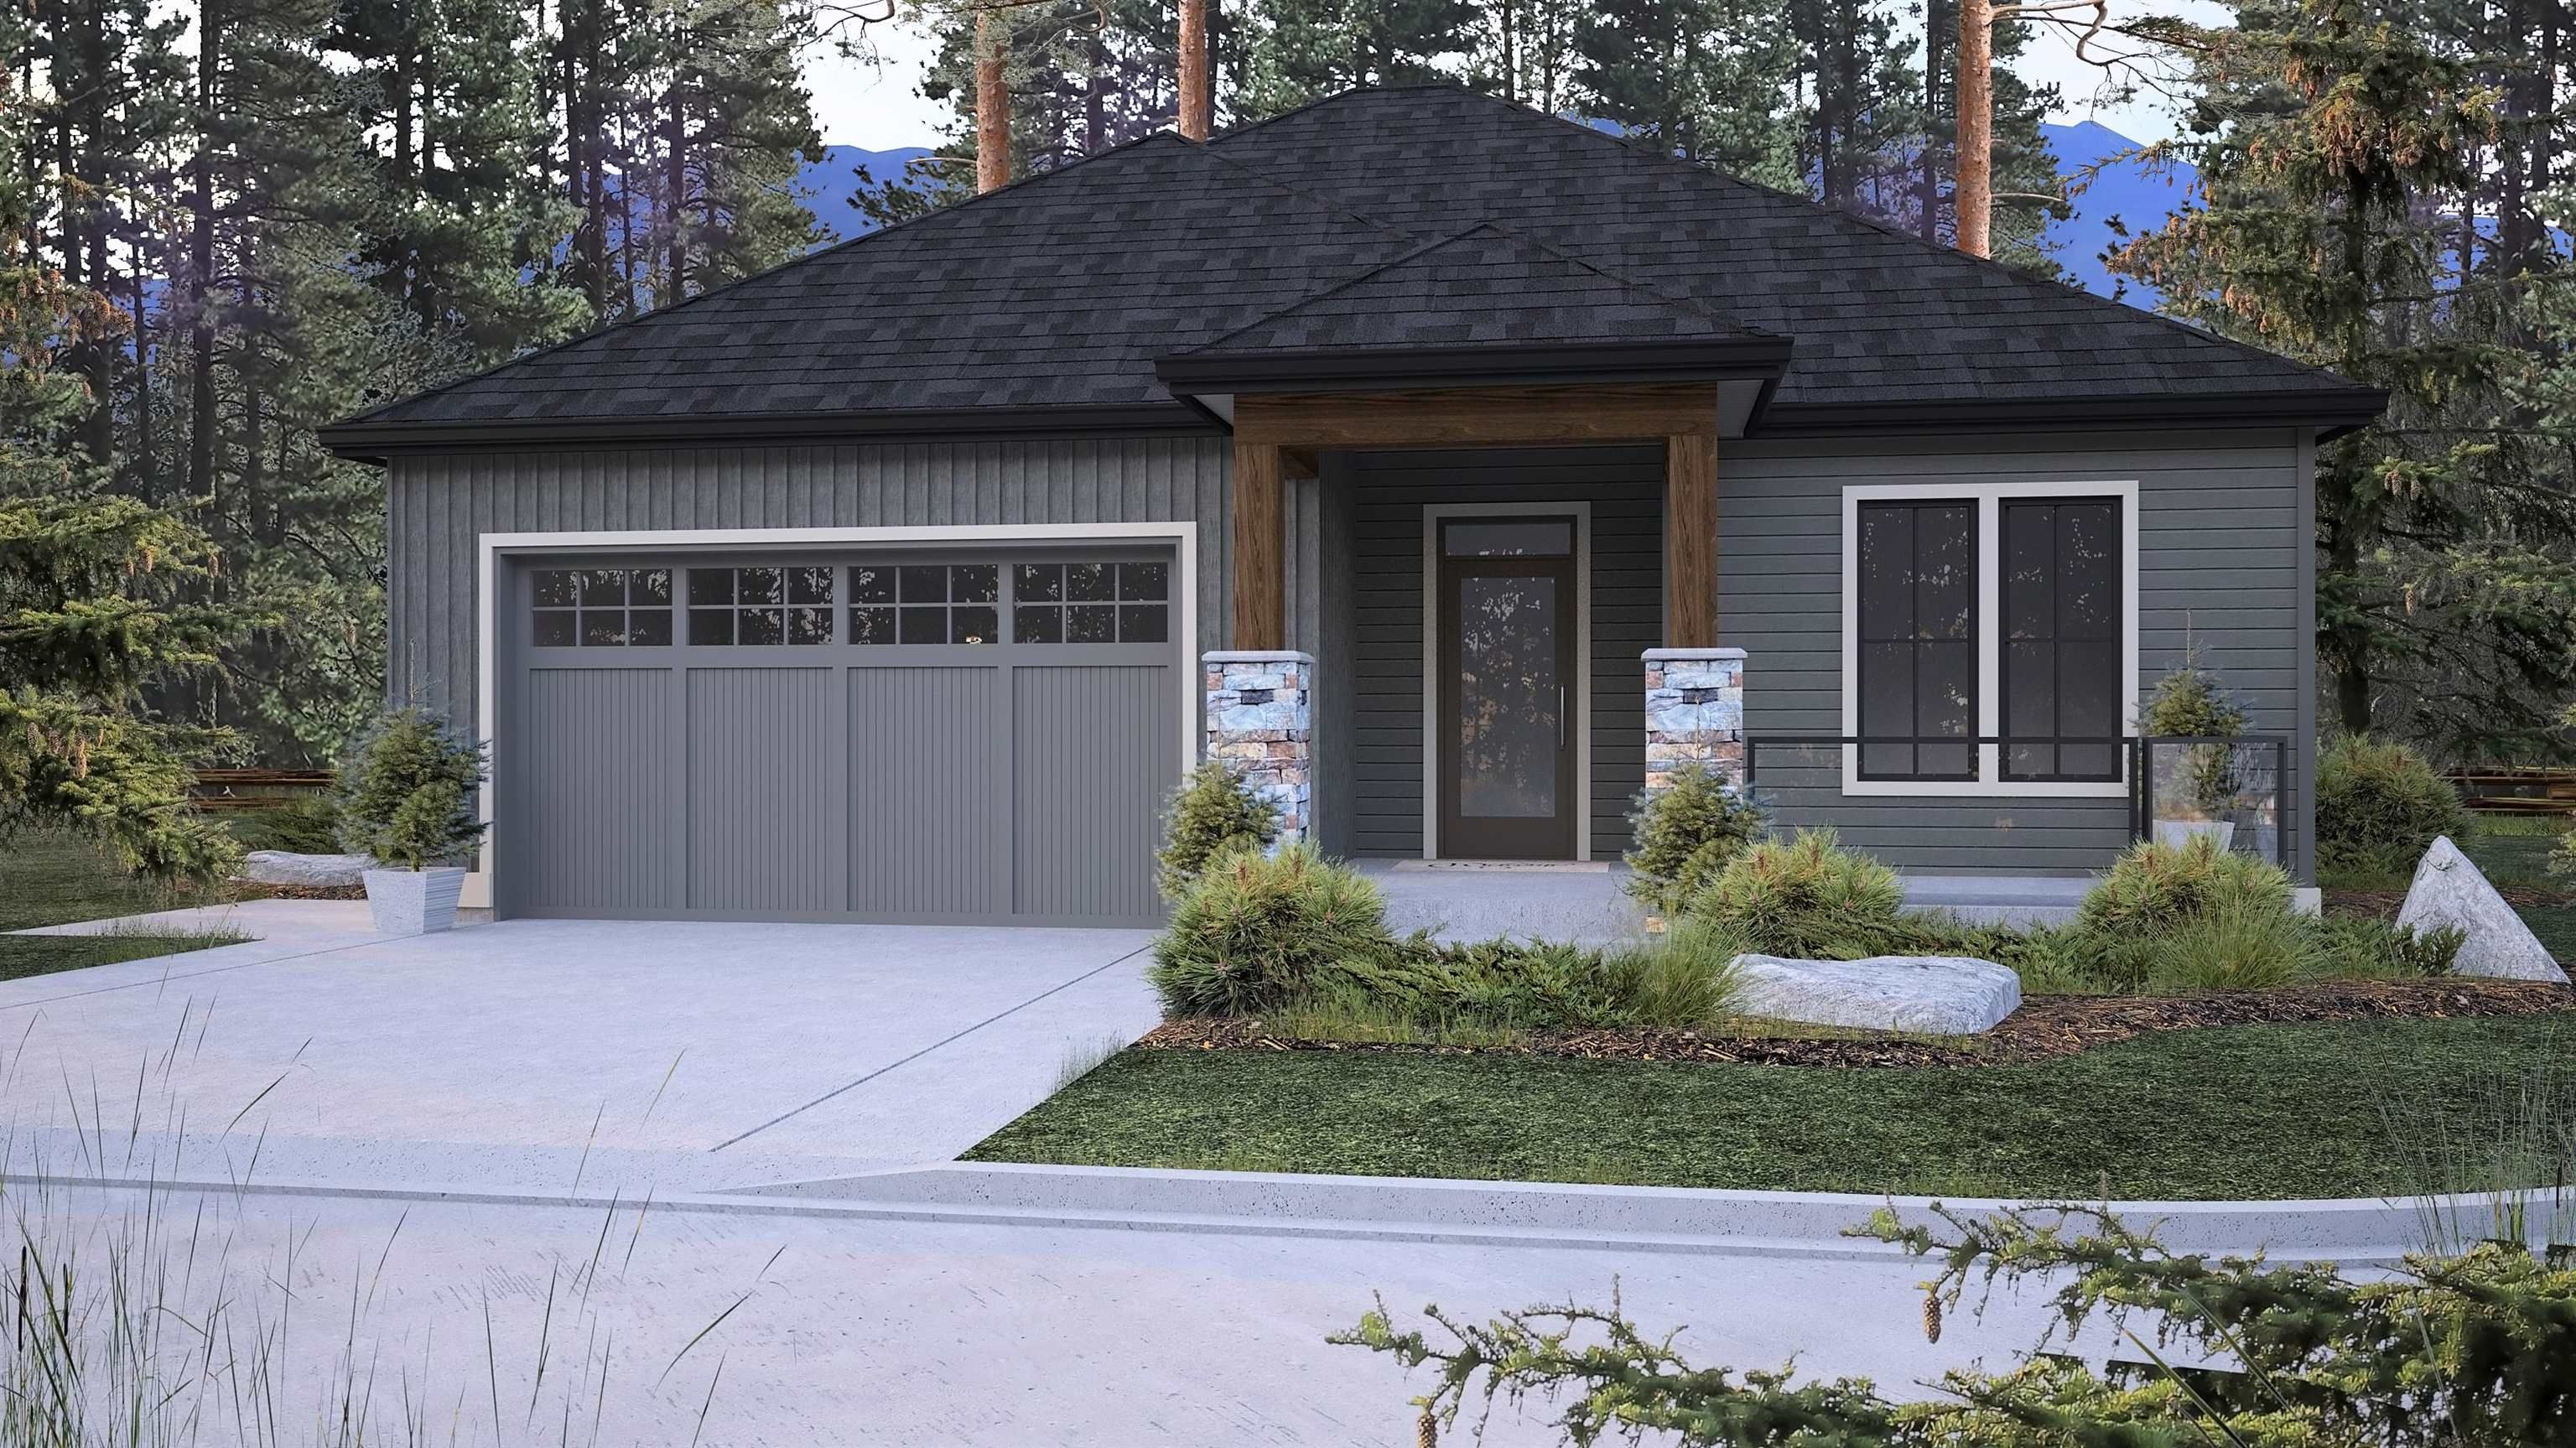 Main Photo: 91 1880 COLUMBIA VALLEY Road in Cultus Lake: Lindell Beach House for sale : MLS®# R2624533